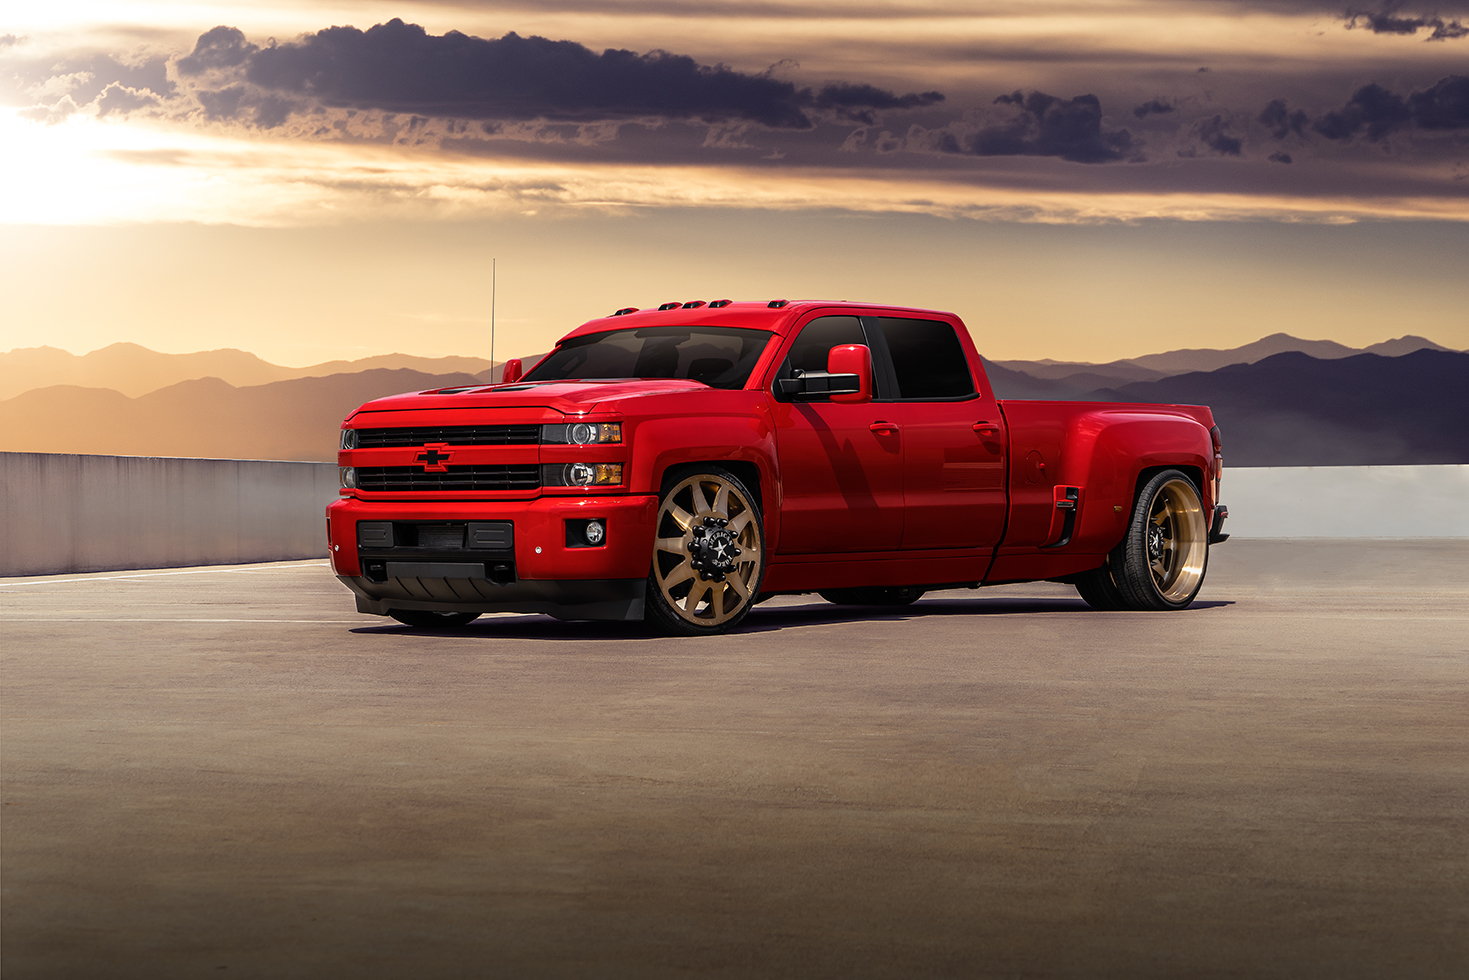 2015 Denali Hd For Sale >> American Force Super Dually Series 611 Independence SD Wheels | California Wheels